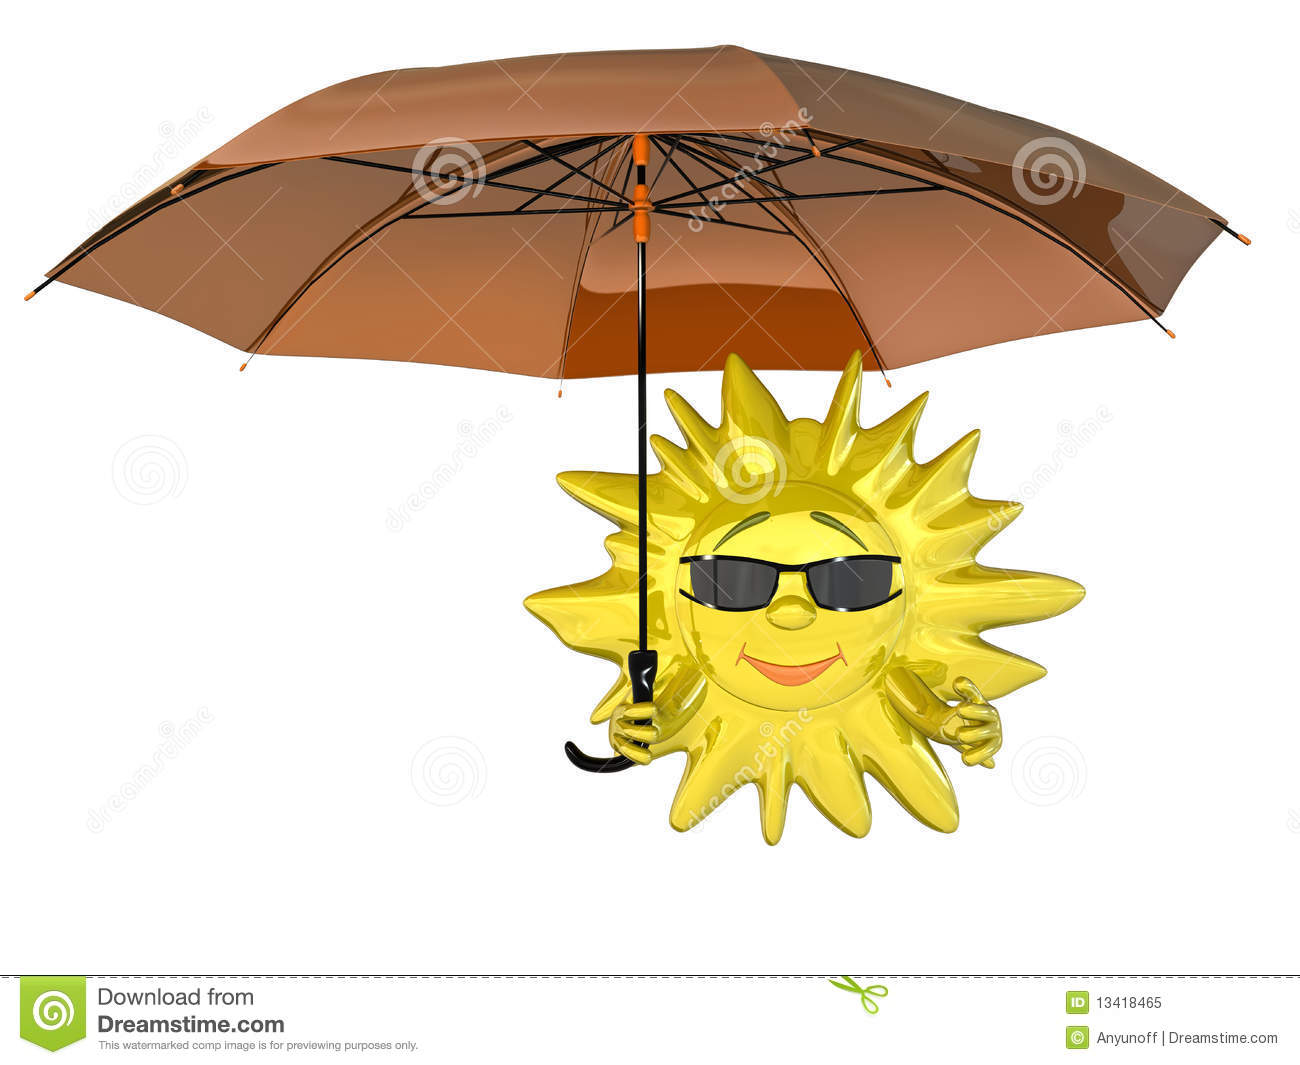 Cartoon sun with umbrella